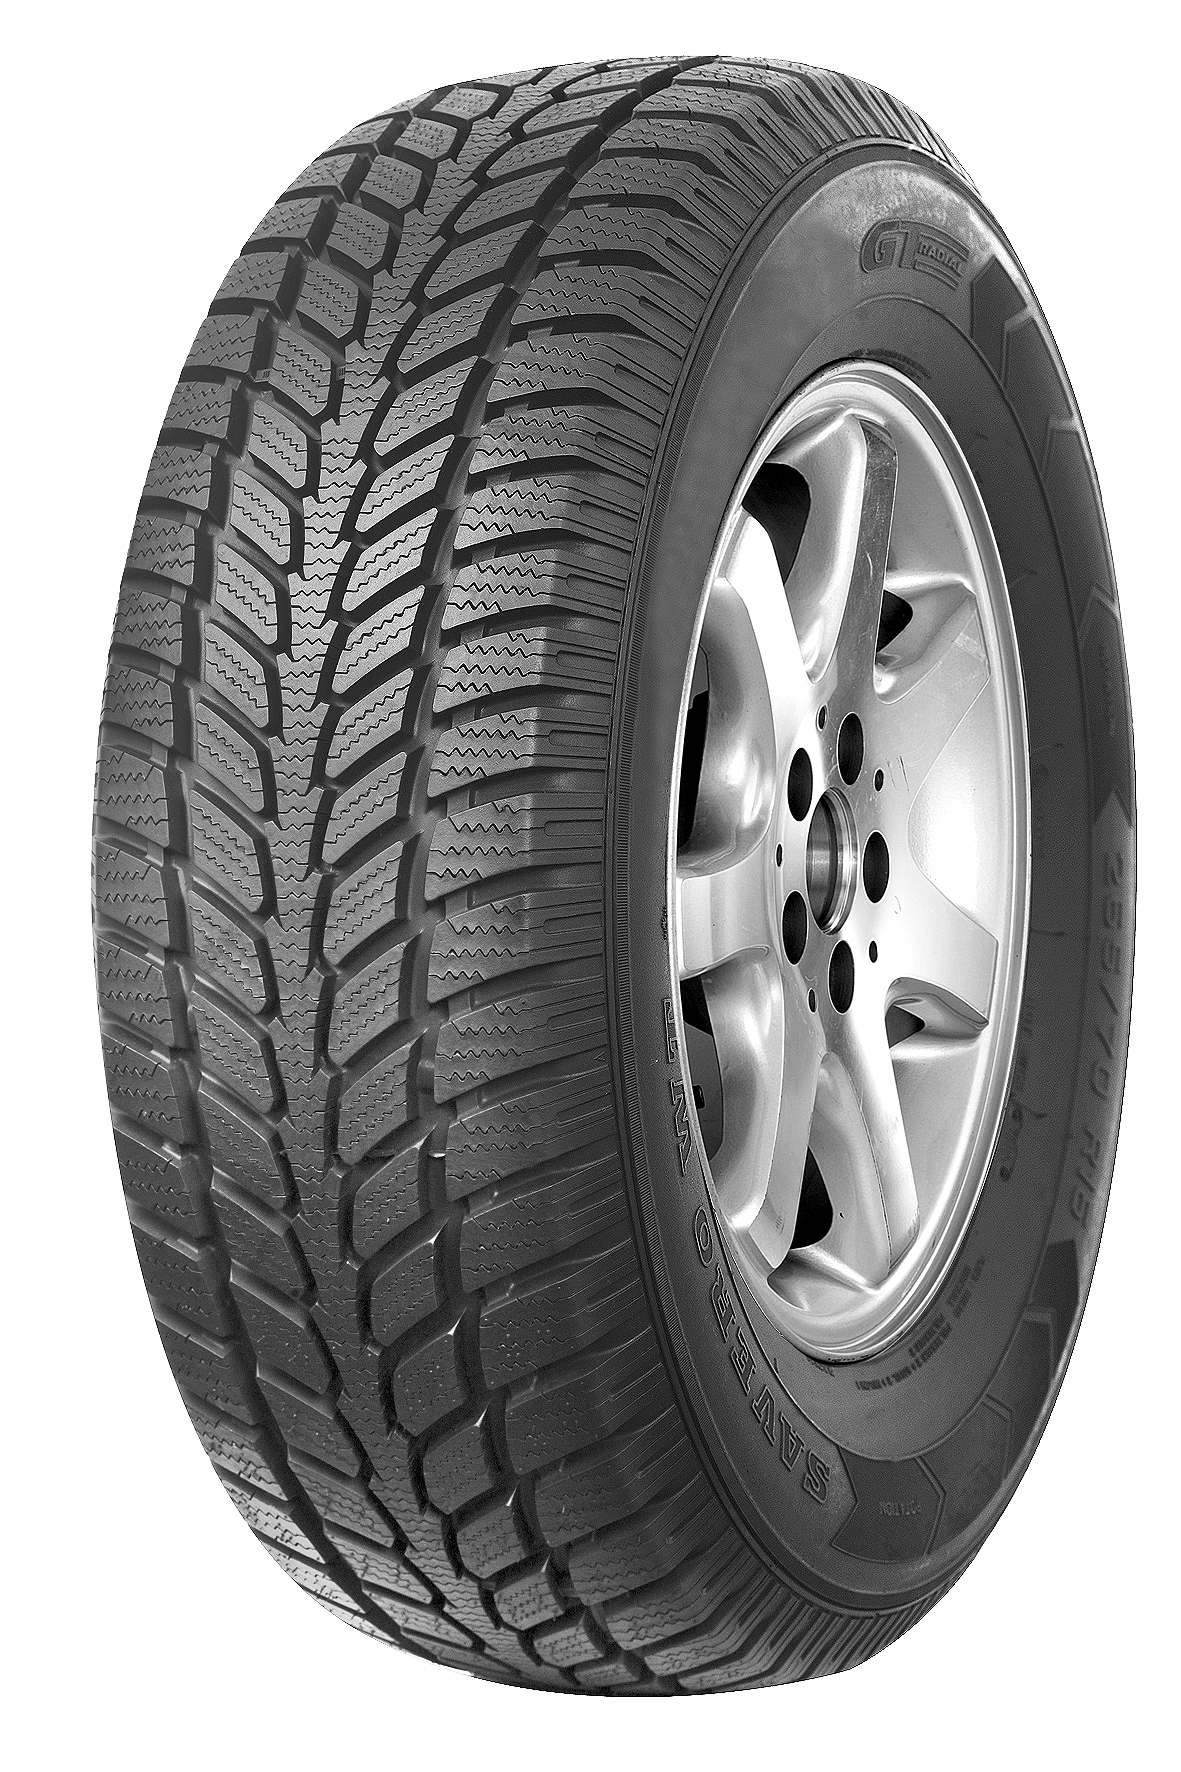 Car Tires and Truck Tires   GT Radial